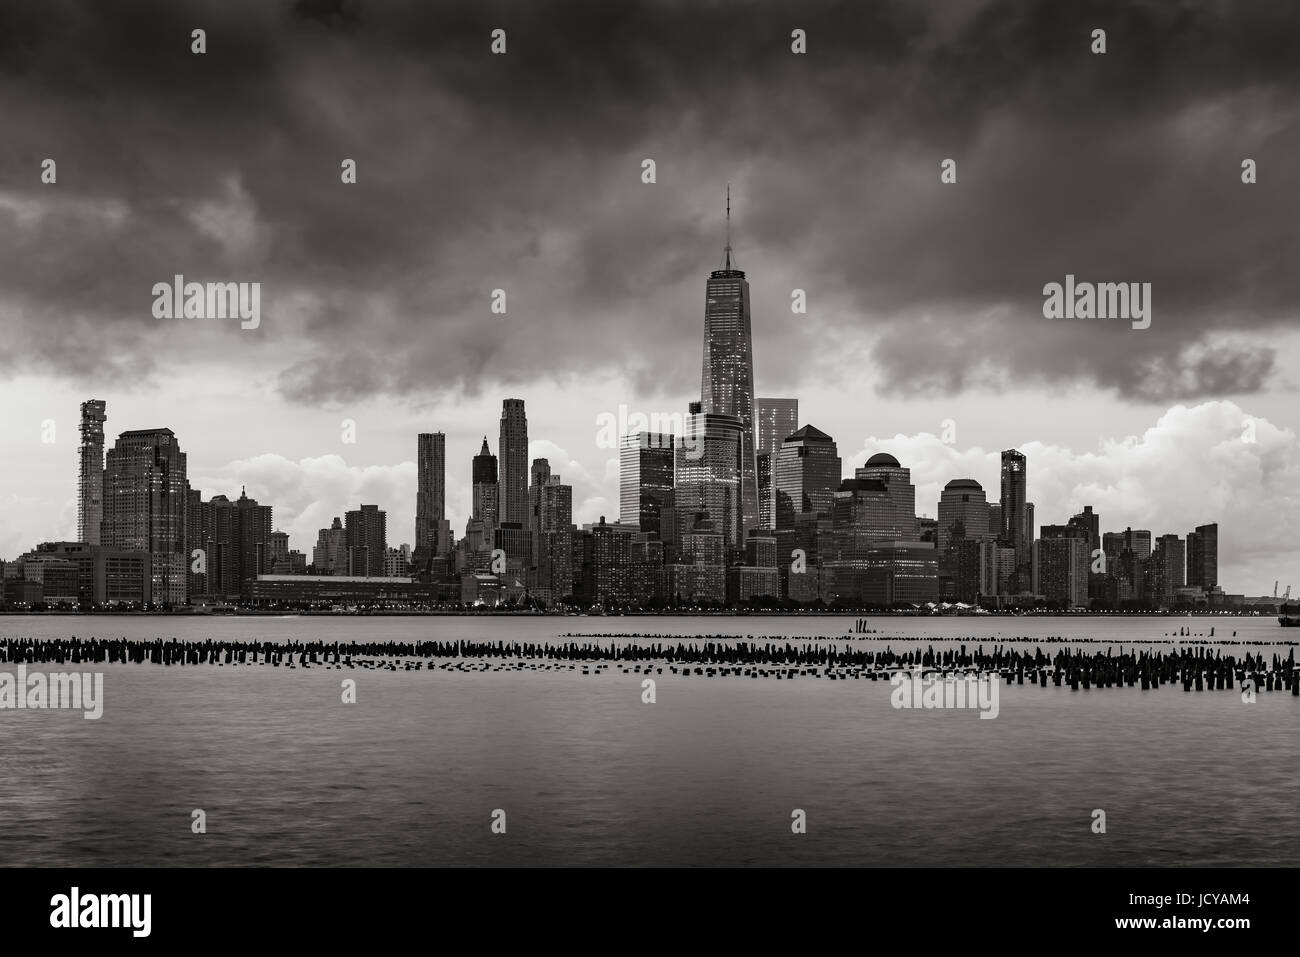 New York City Financial District skyline from across the Hudson River in Black and White. Low storm clouds over Stock Photo